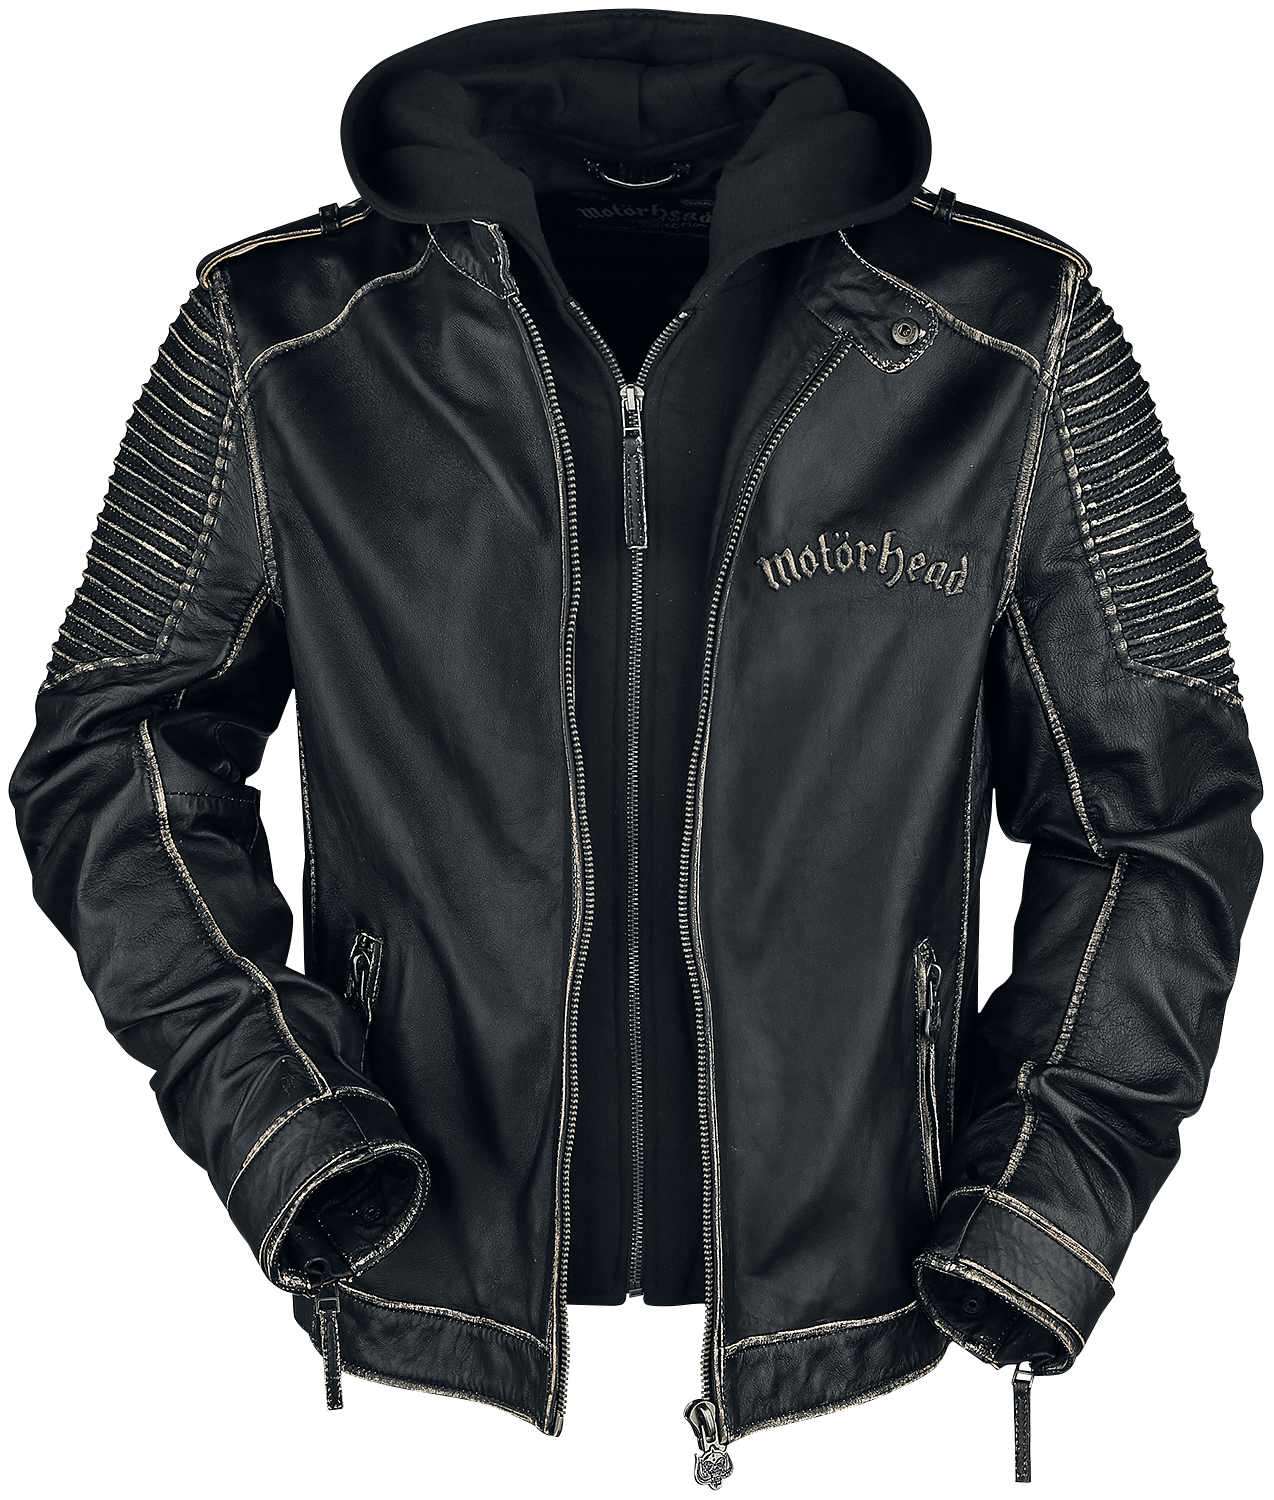 Motörhead - EMP Signature Collection - Lederjacke - schwarz - EMP Exklusiv!